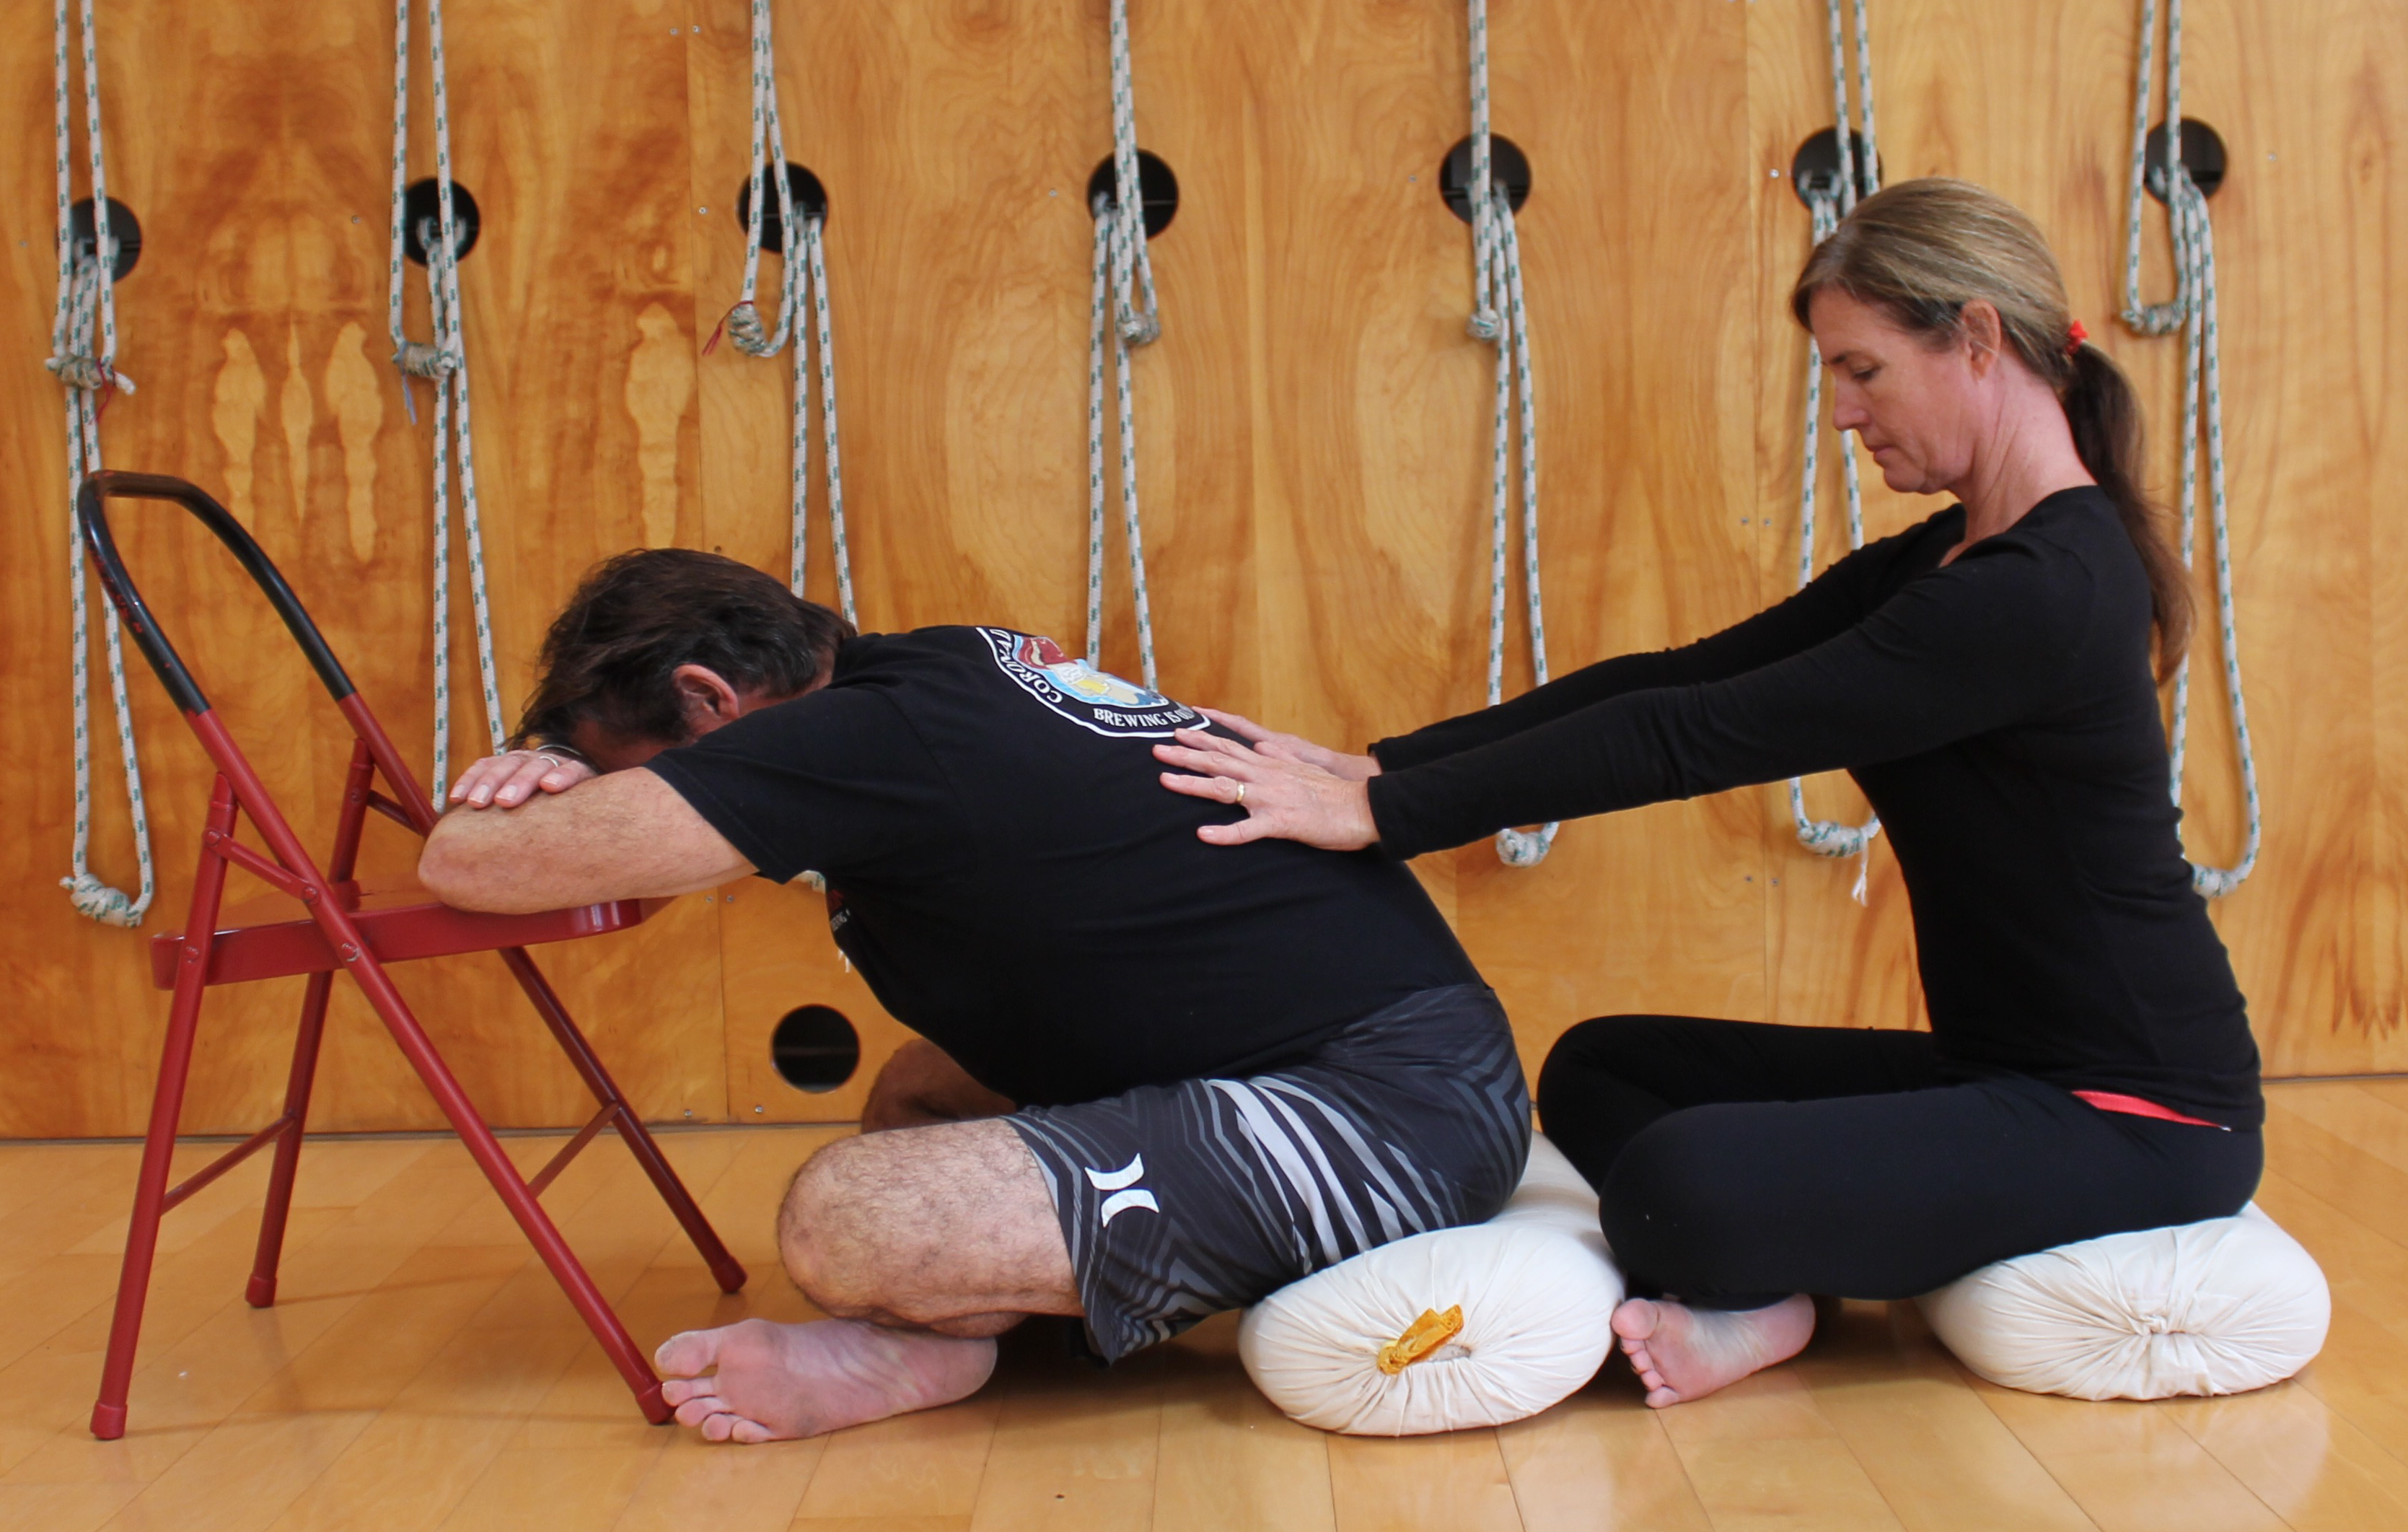 Kim & Russ Imlay teach Couples Date Night Classes in February at San Diego Yoga Studio